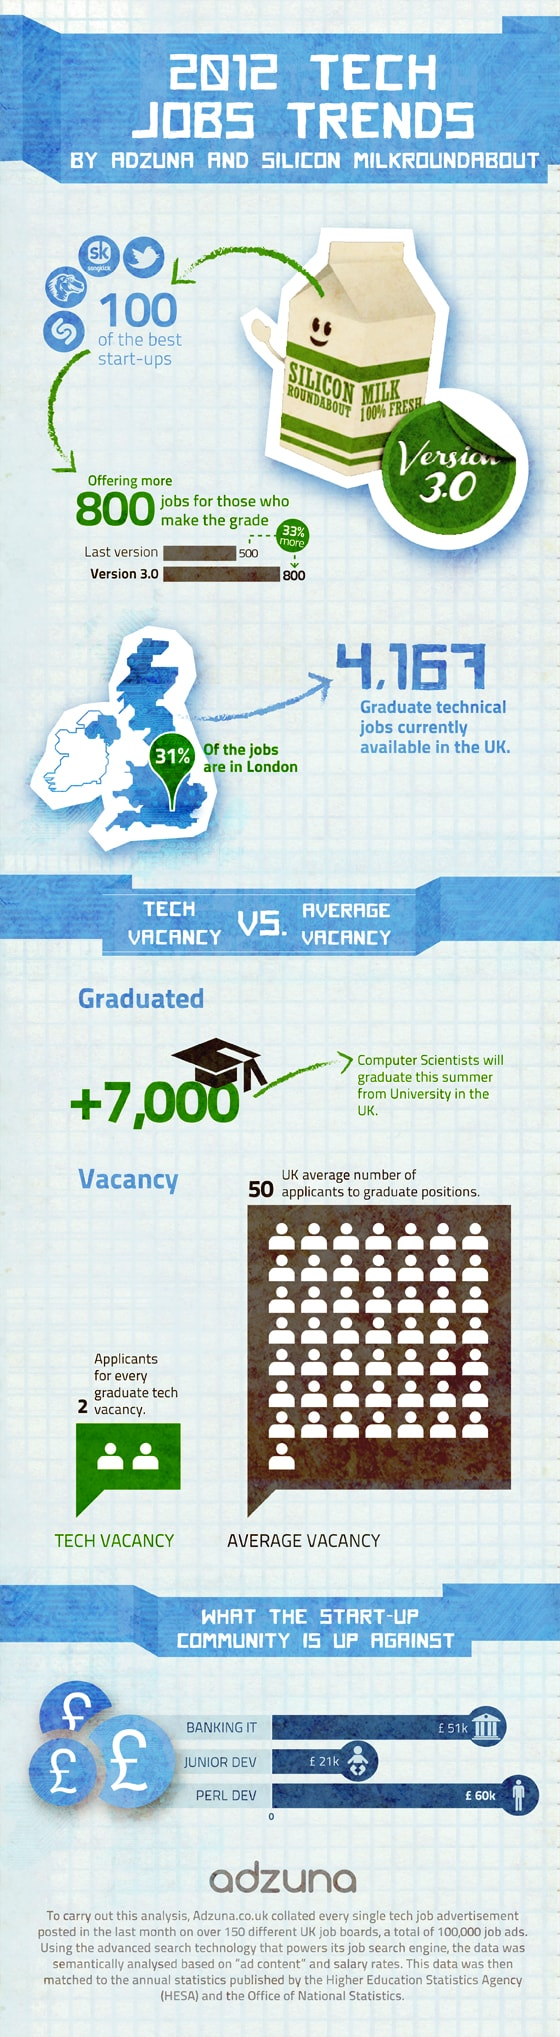 where can i find tech jobs in the uk